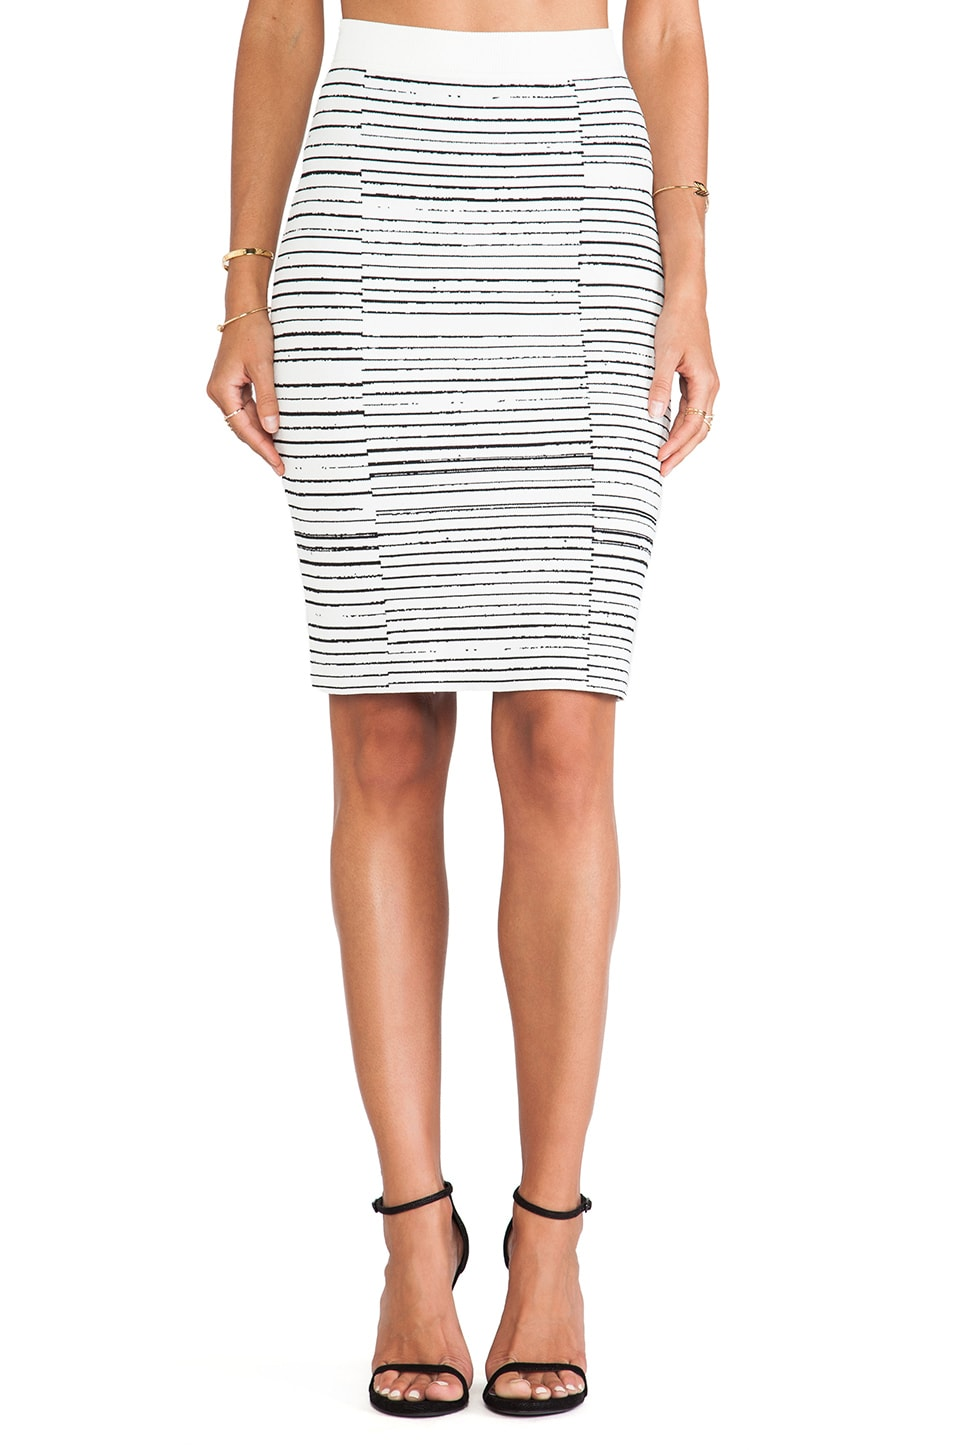 A.L.C. Lyons Skirt in White/Black